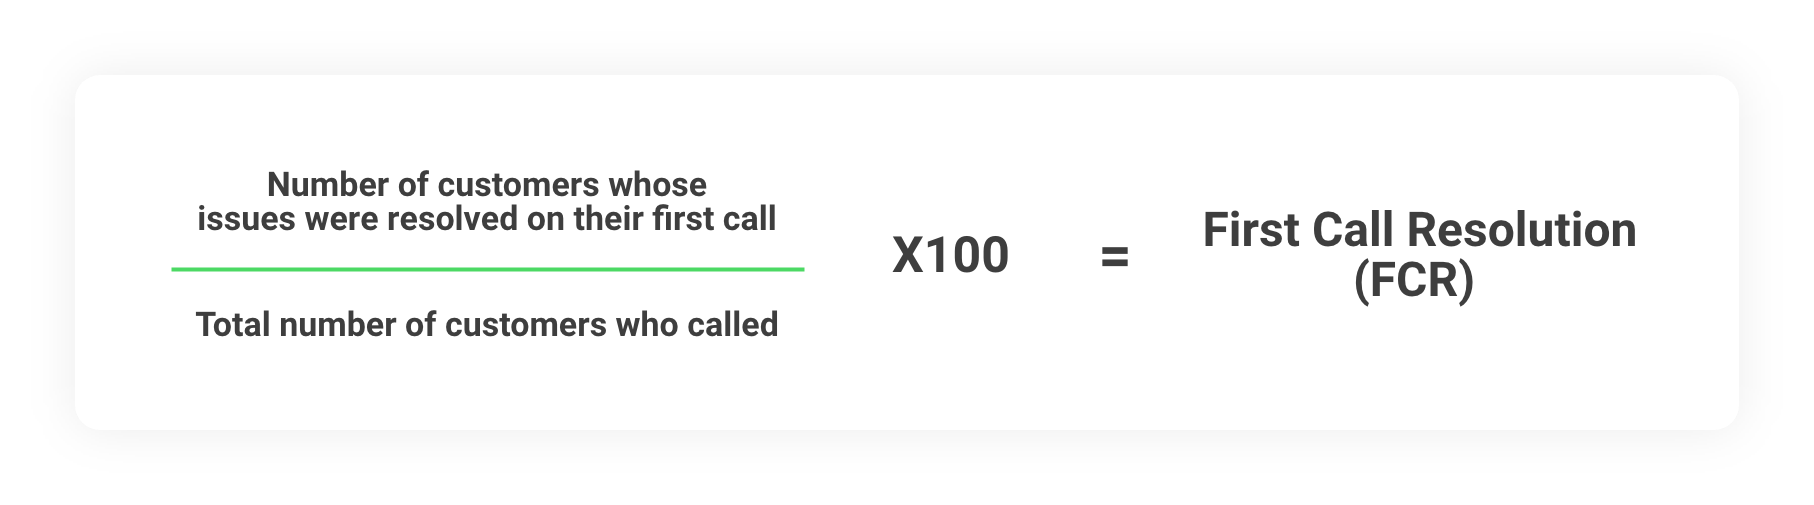 (number of customers whose issues were resolved on their first call ÷ total number of customers who called) x 100 = First Call Resolution (FCR), support first call